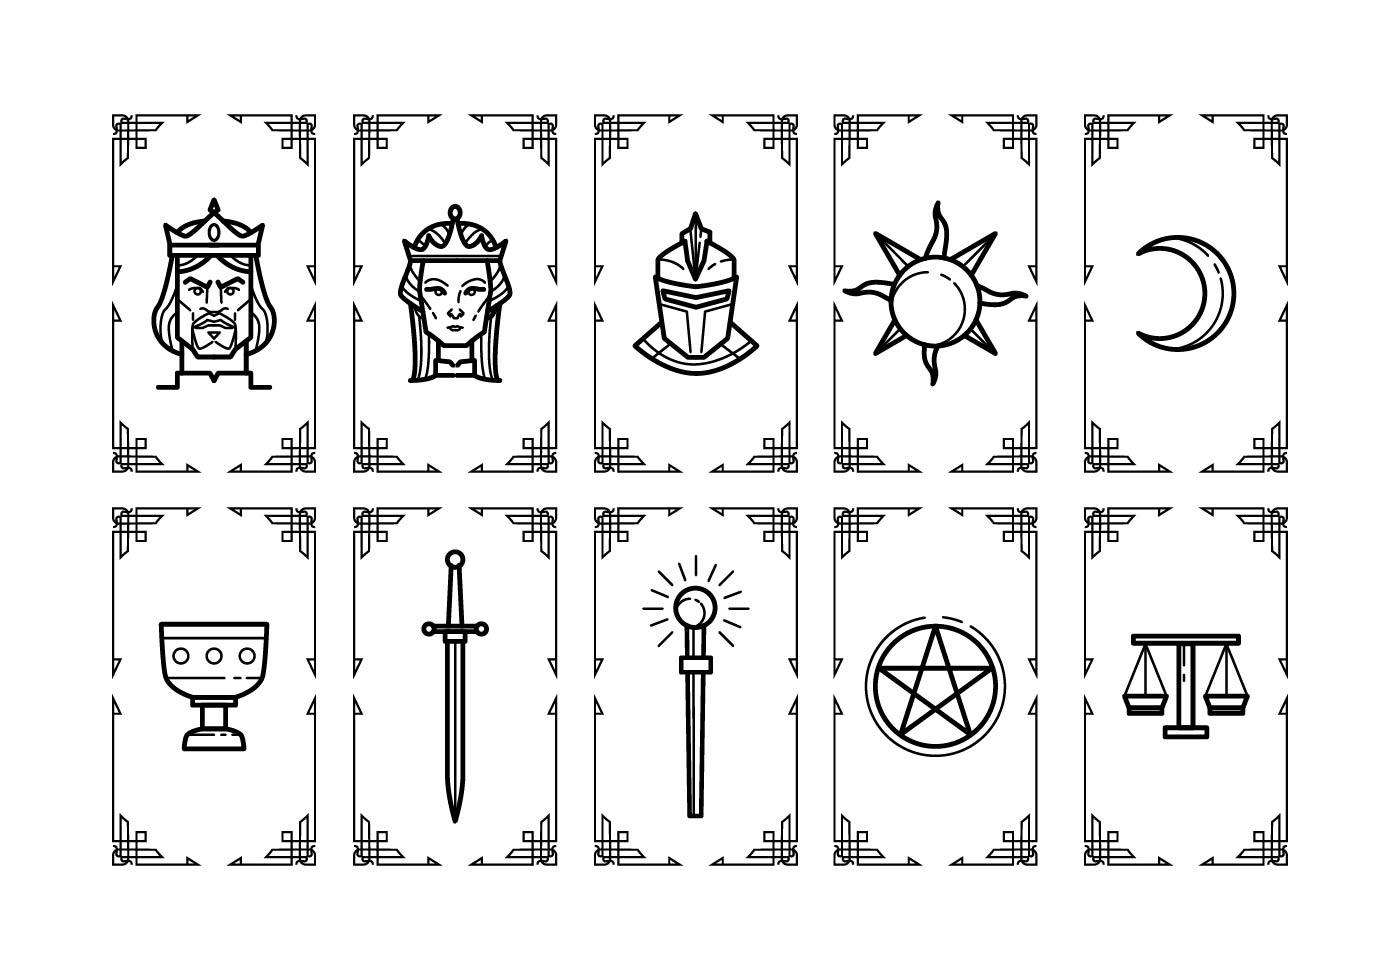 Tarot Card Designs Google Search Free Tarot Cards Free Tarot Diy Tarot Cards